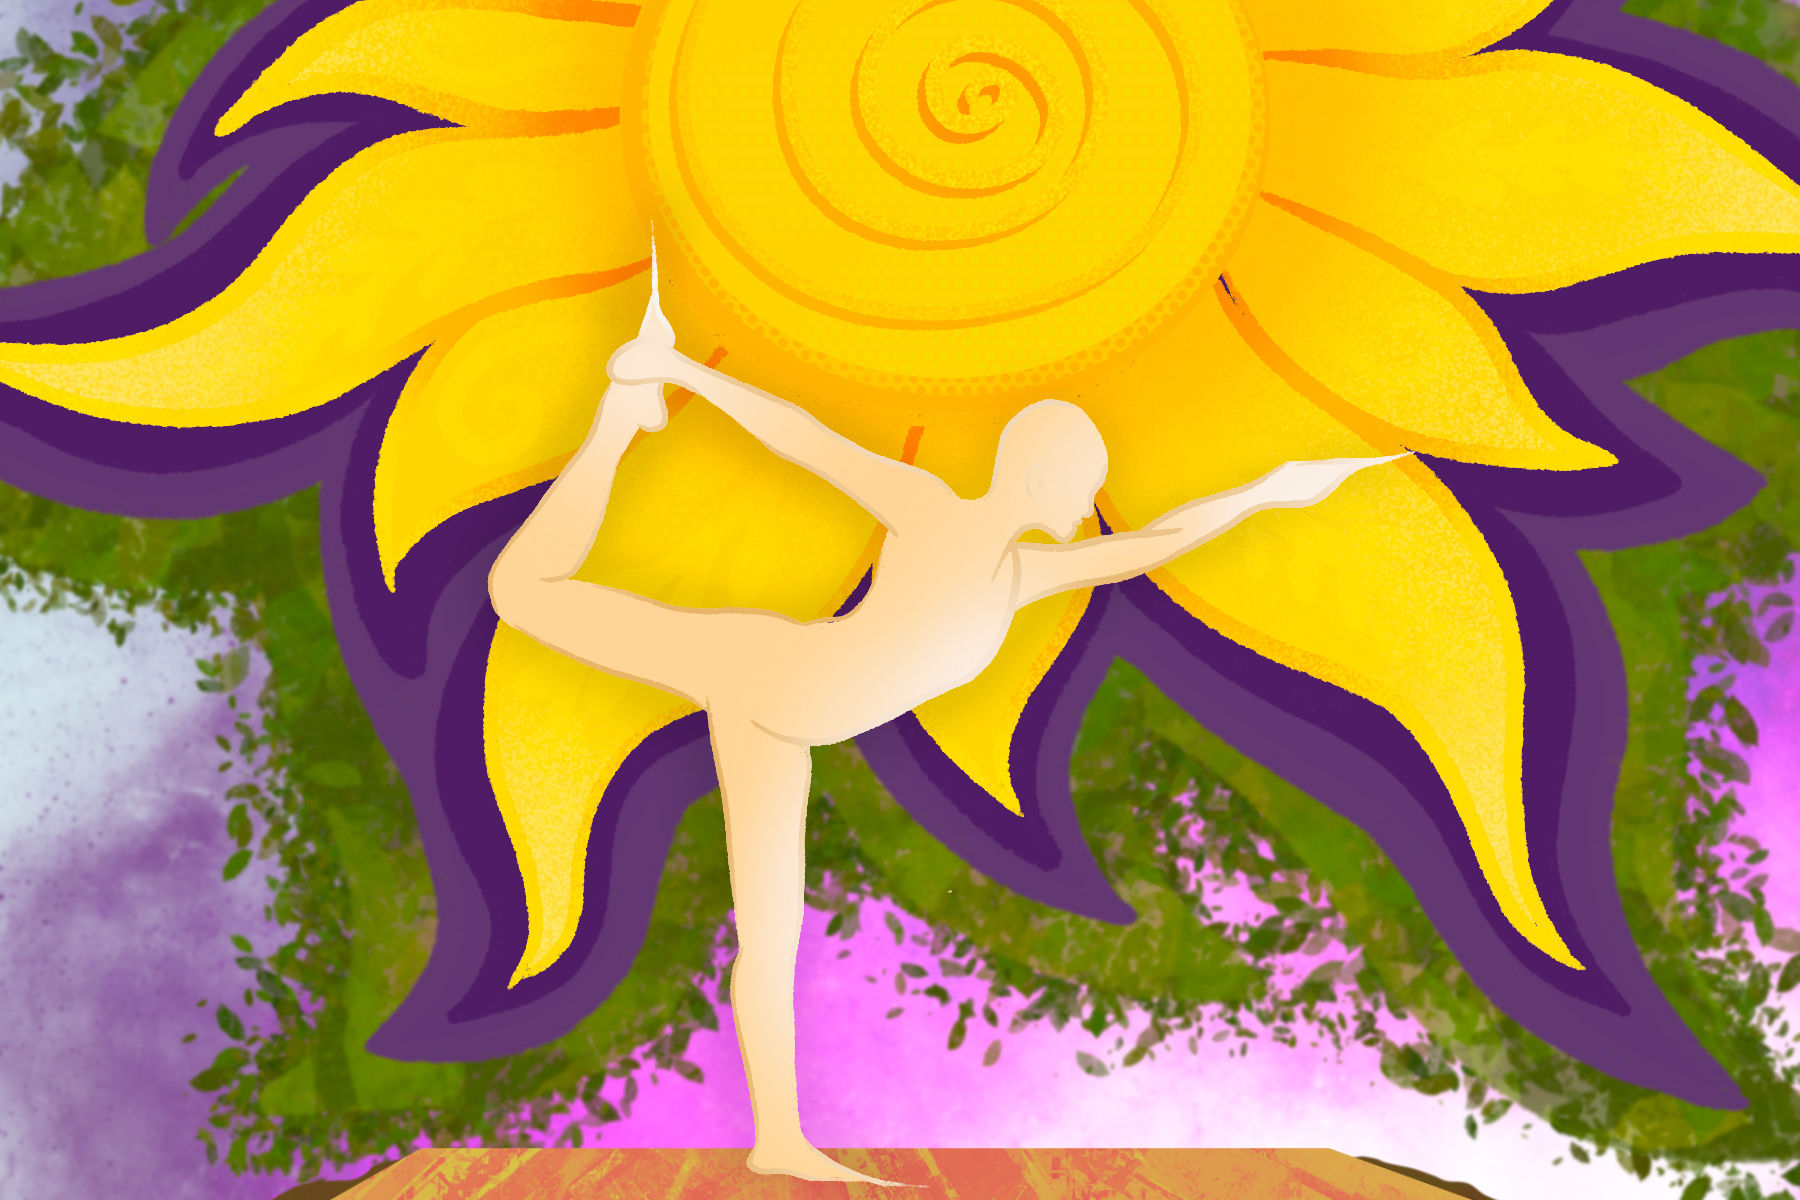 Illustration by Sezi Kaya of an individual doing yoga in front of a sunflower